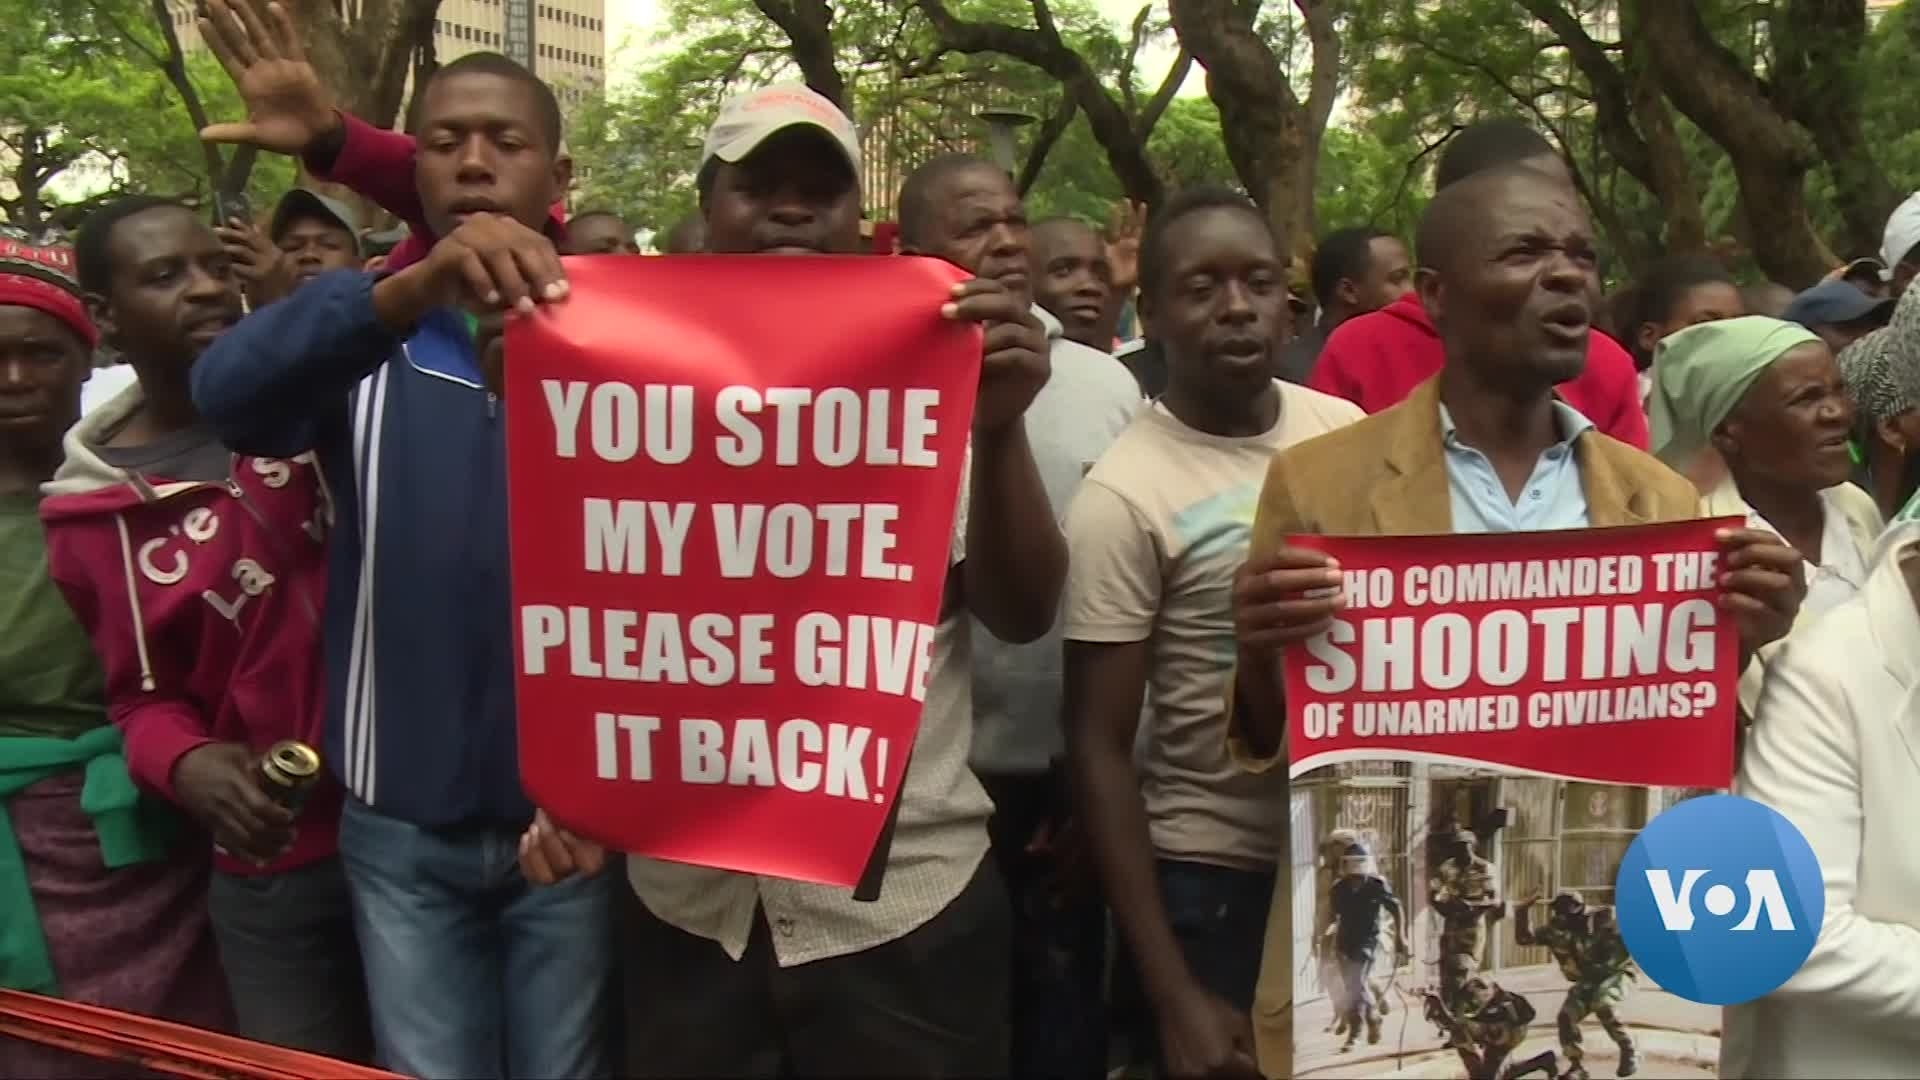 Zimbabweans Mark Anniversary of Army-led Shootings